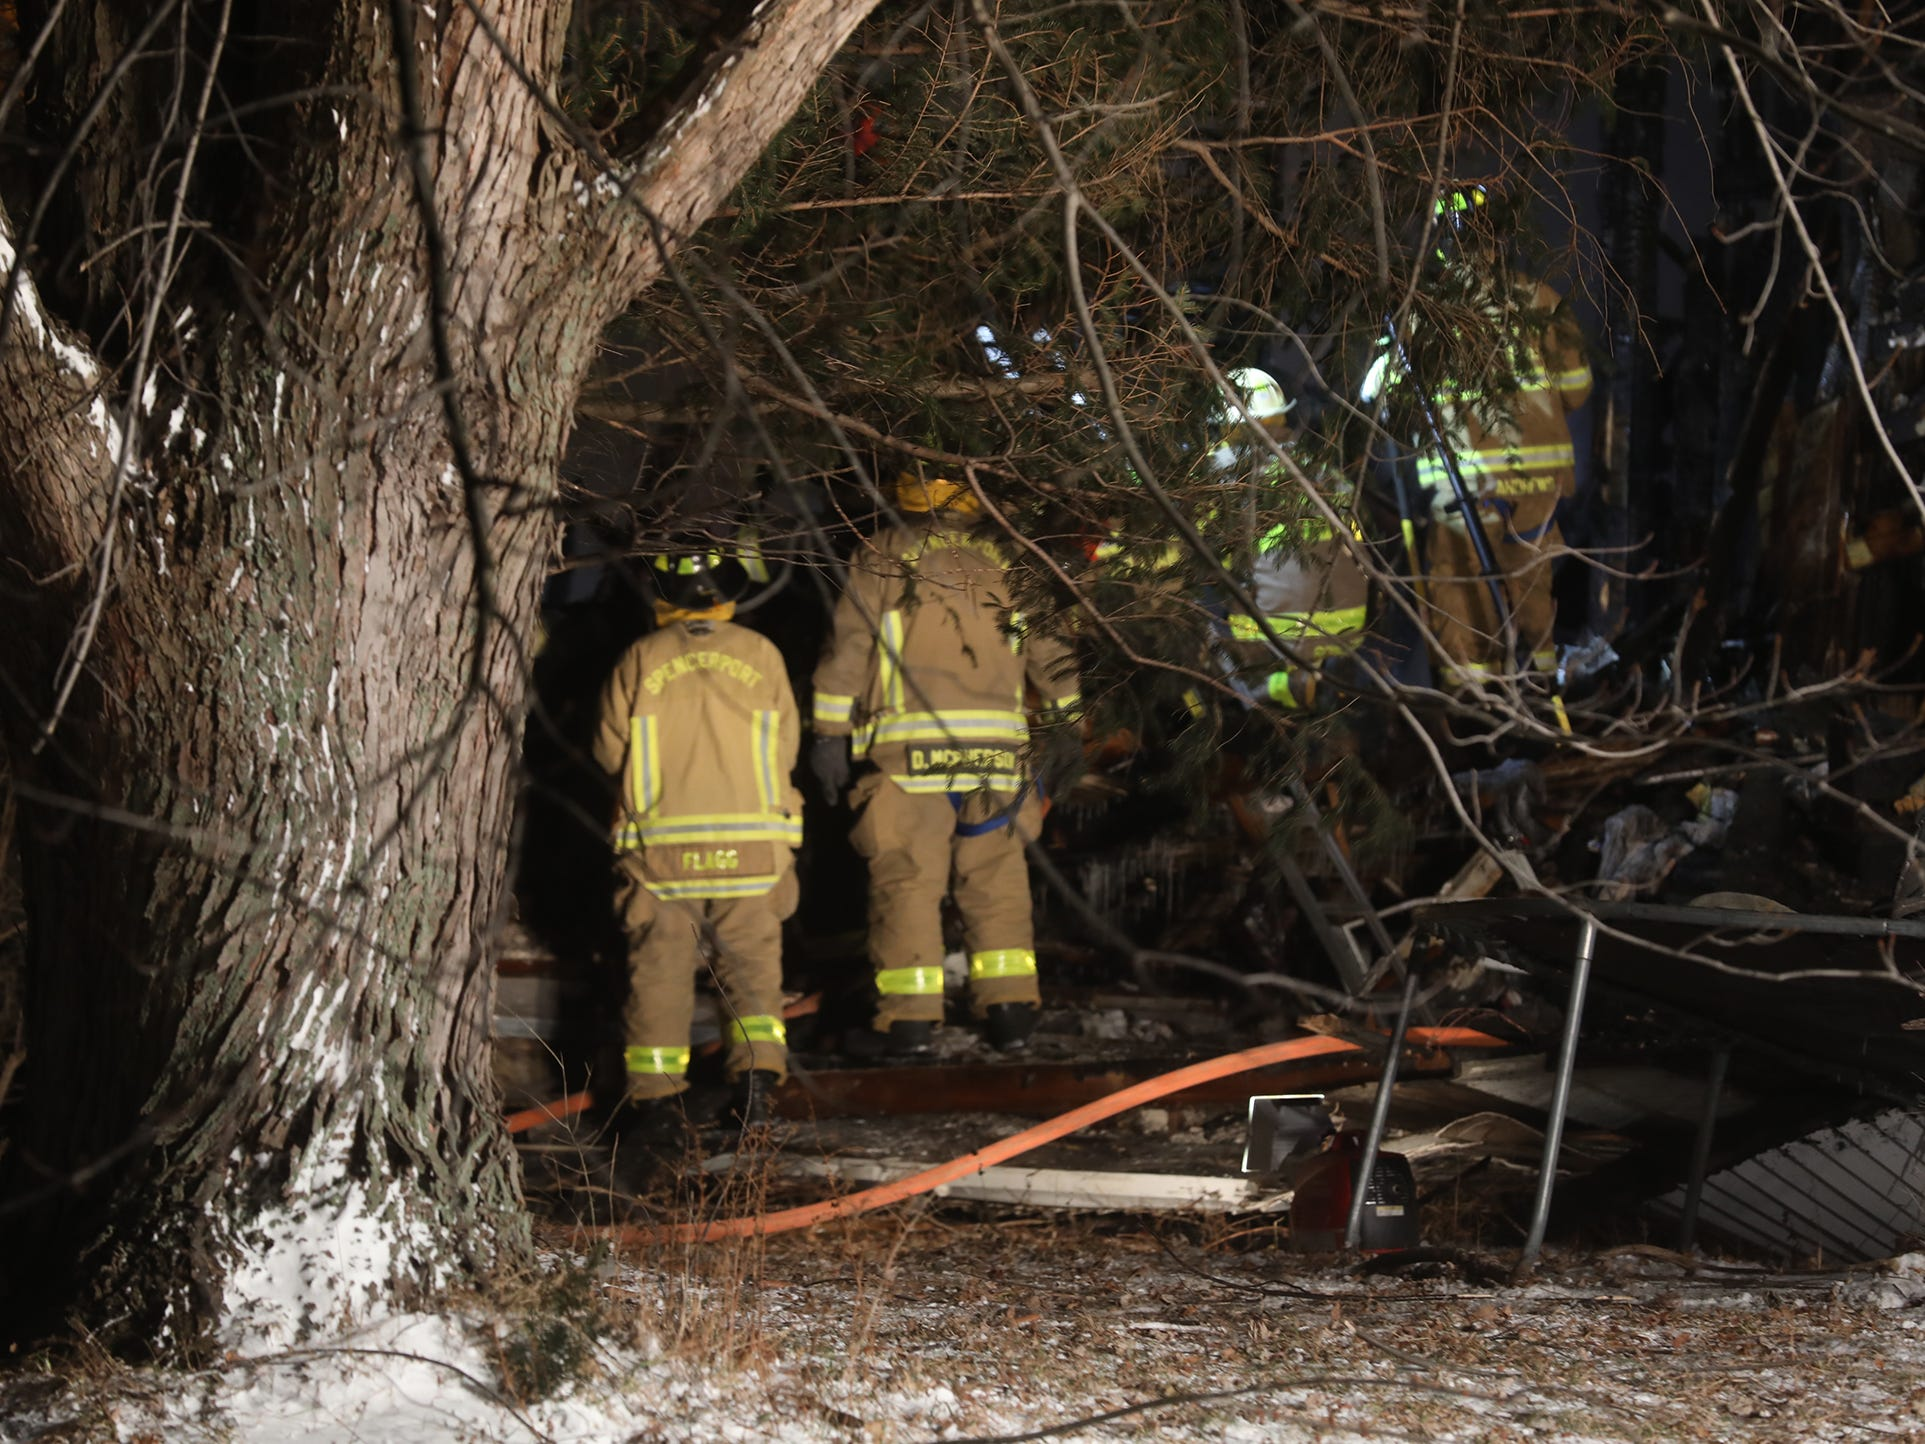 The back of the house was engulfed in flames; it was also the area the residents used to enter and exit the home.